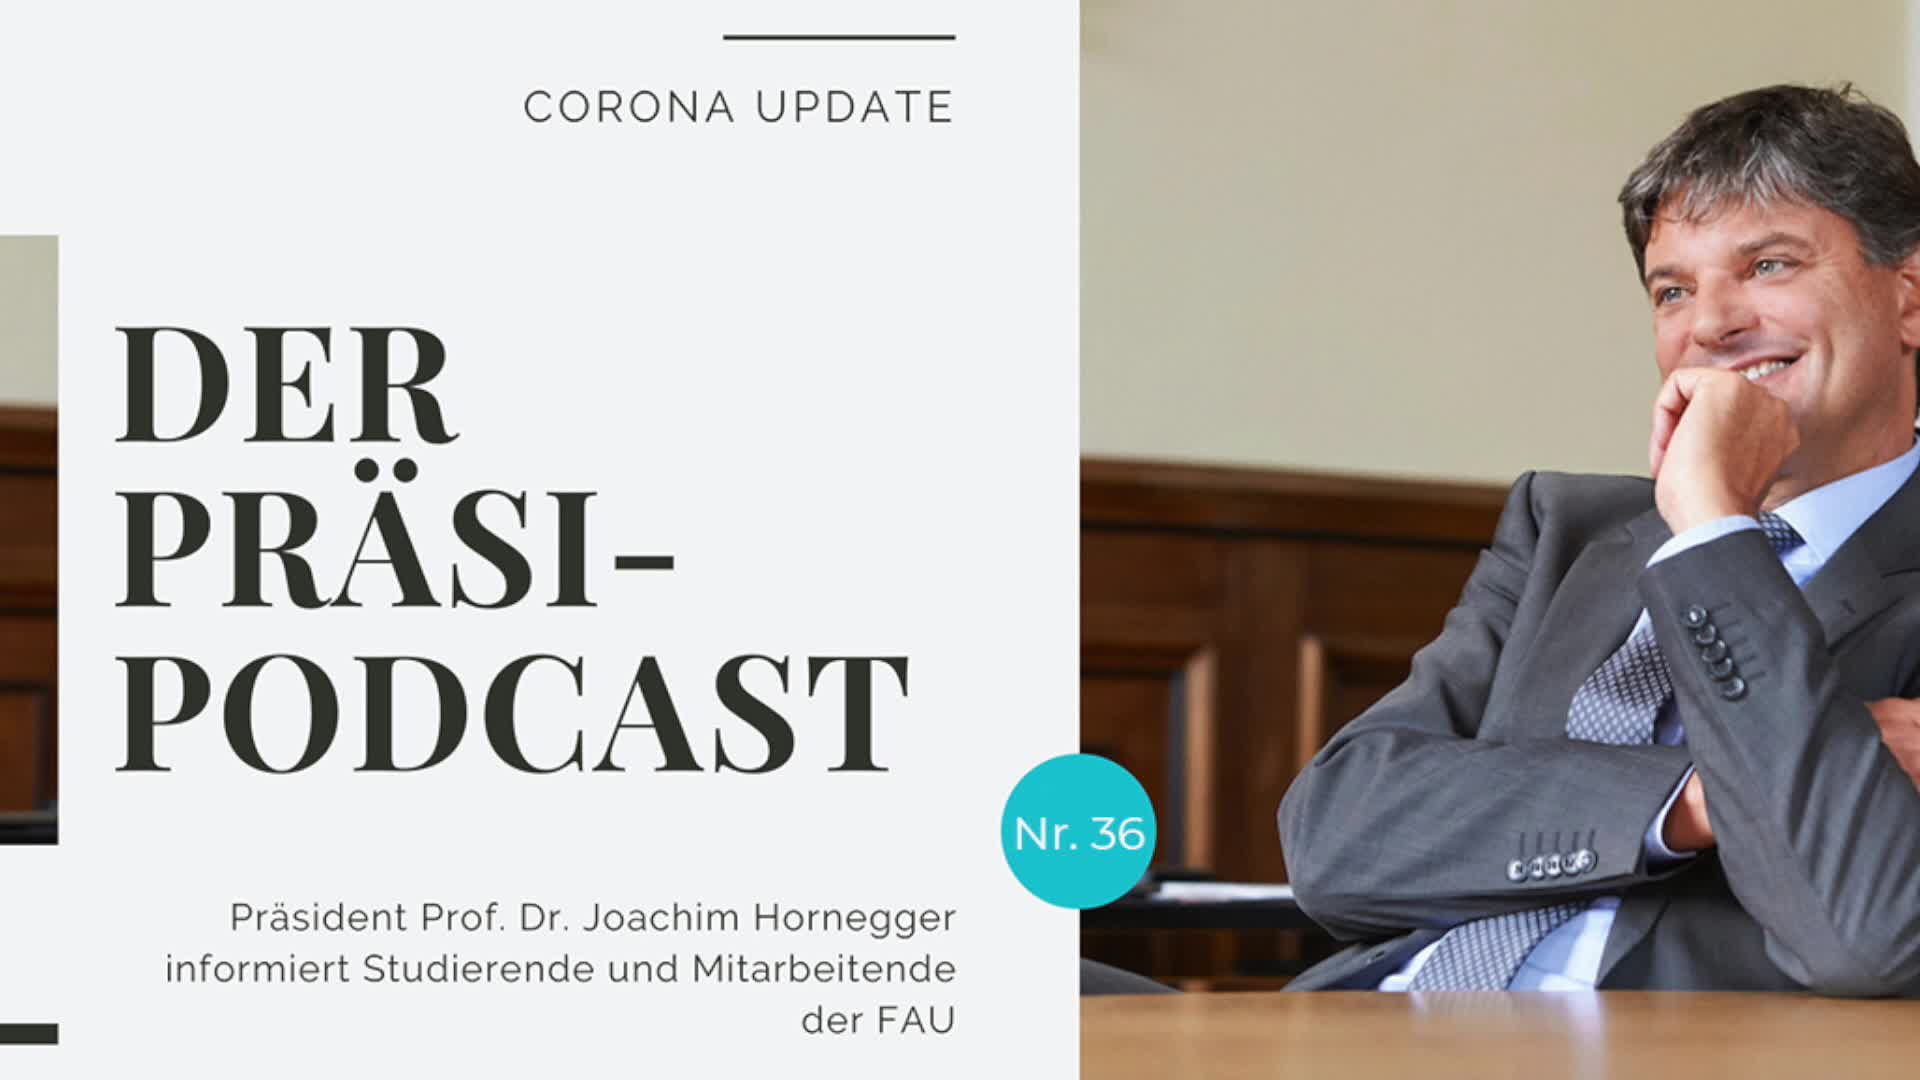 """Der Präsi-Podcast"" vom 12. Januar 2021 preview image"